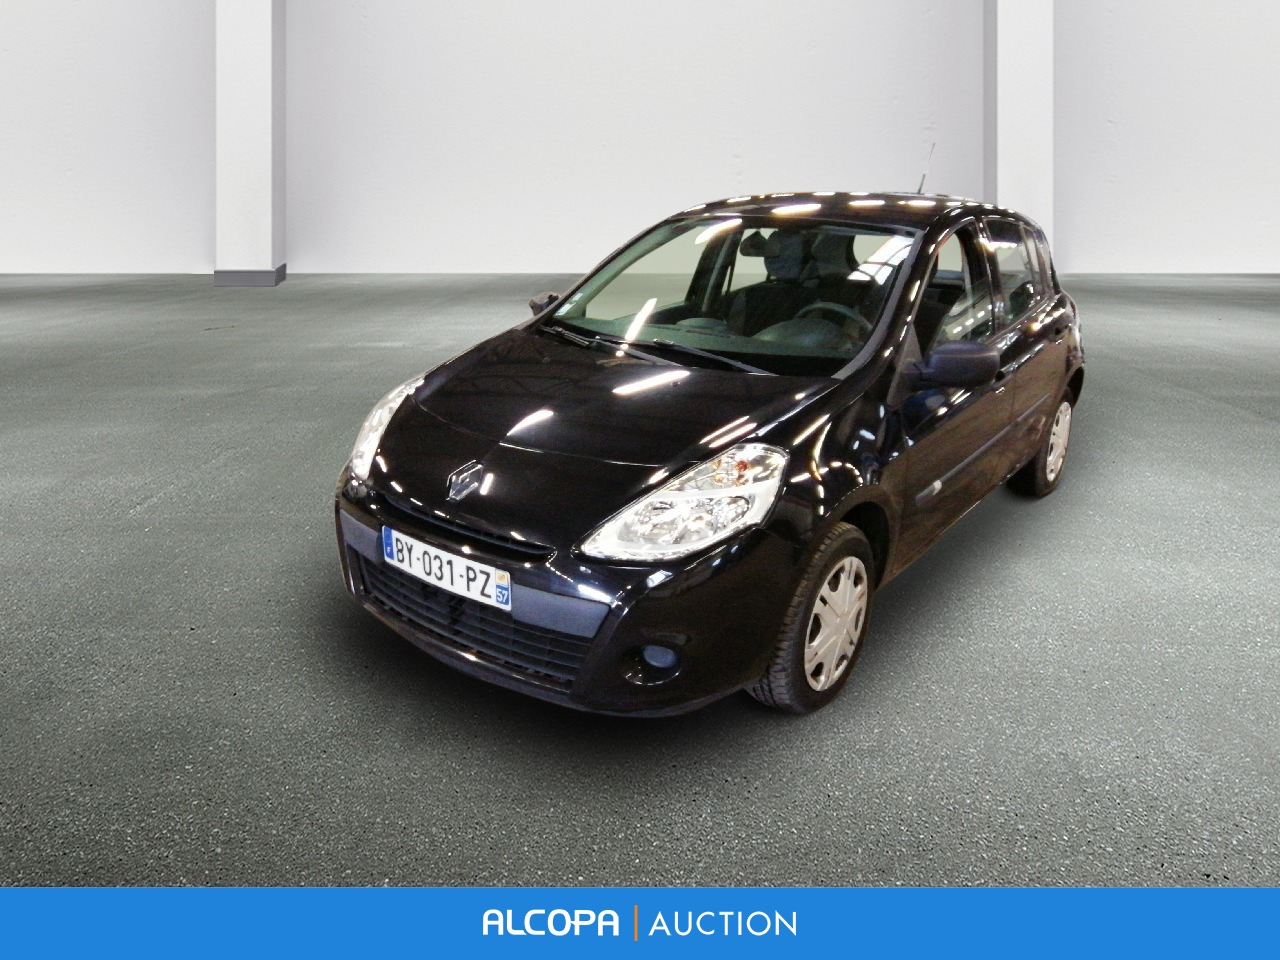 renault clio iii clio iii 1 2 16v 75 pack clim nancy alcopa auction. Black Bedroom Furniture Sets. Home Design Ideas